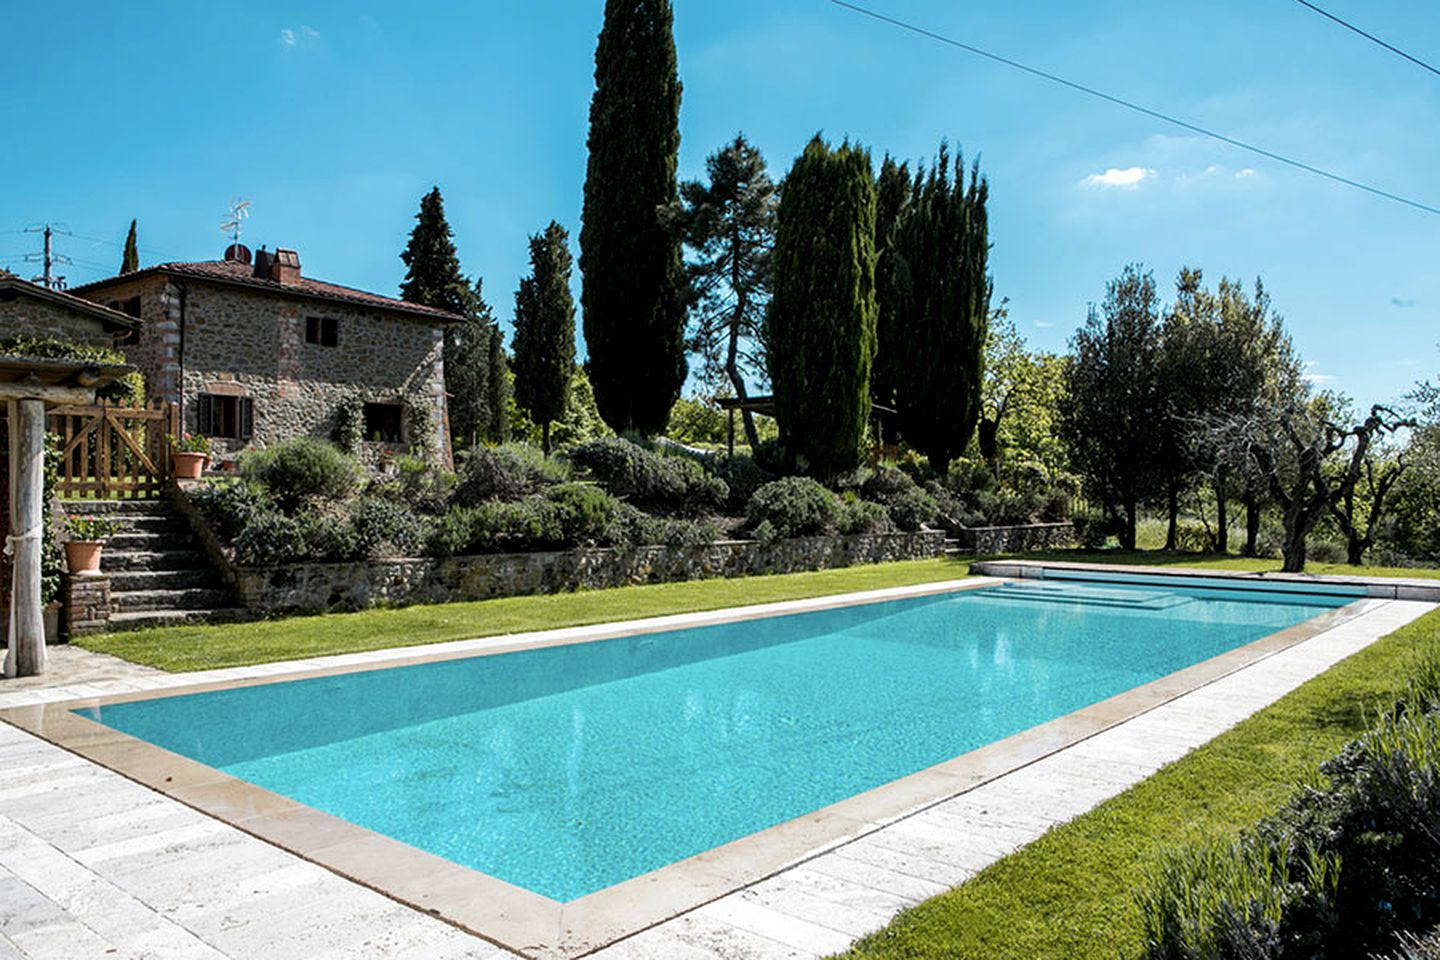 Villas Near Siena Italy gorgeous villa vacation rental with pool and sauna near siena in tuscany,  italy